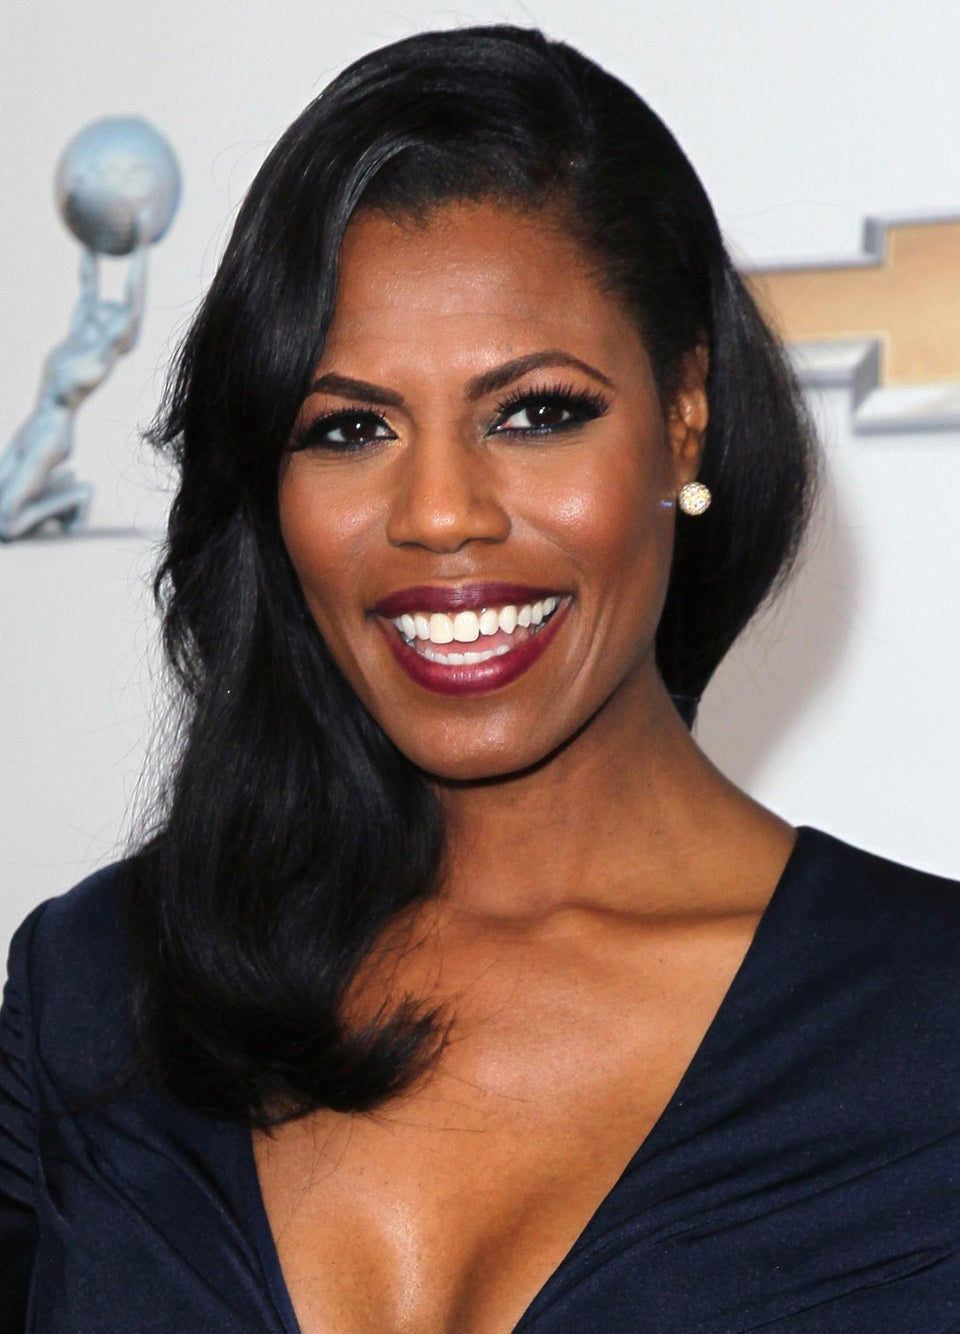 Omarosa Manigault on 'Apprentice,' Becoming a Minister, and Coping with Michael Clarke Duncan's Death